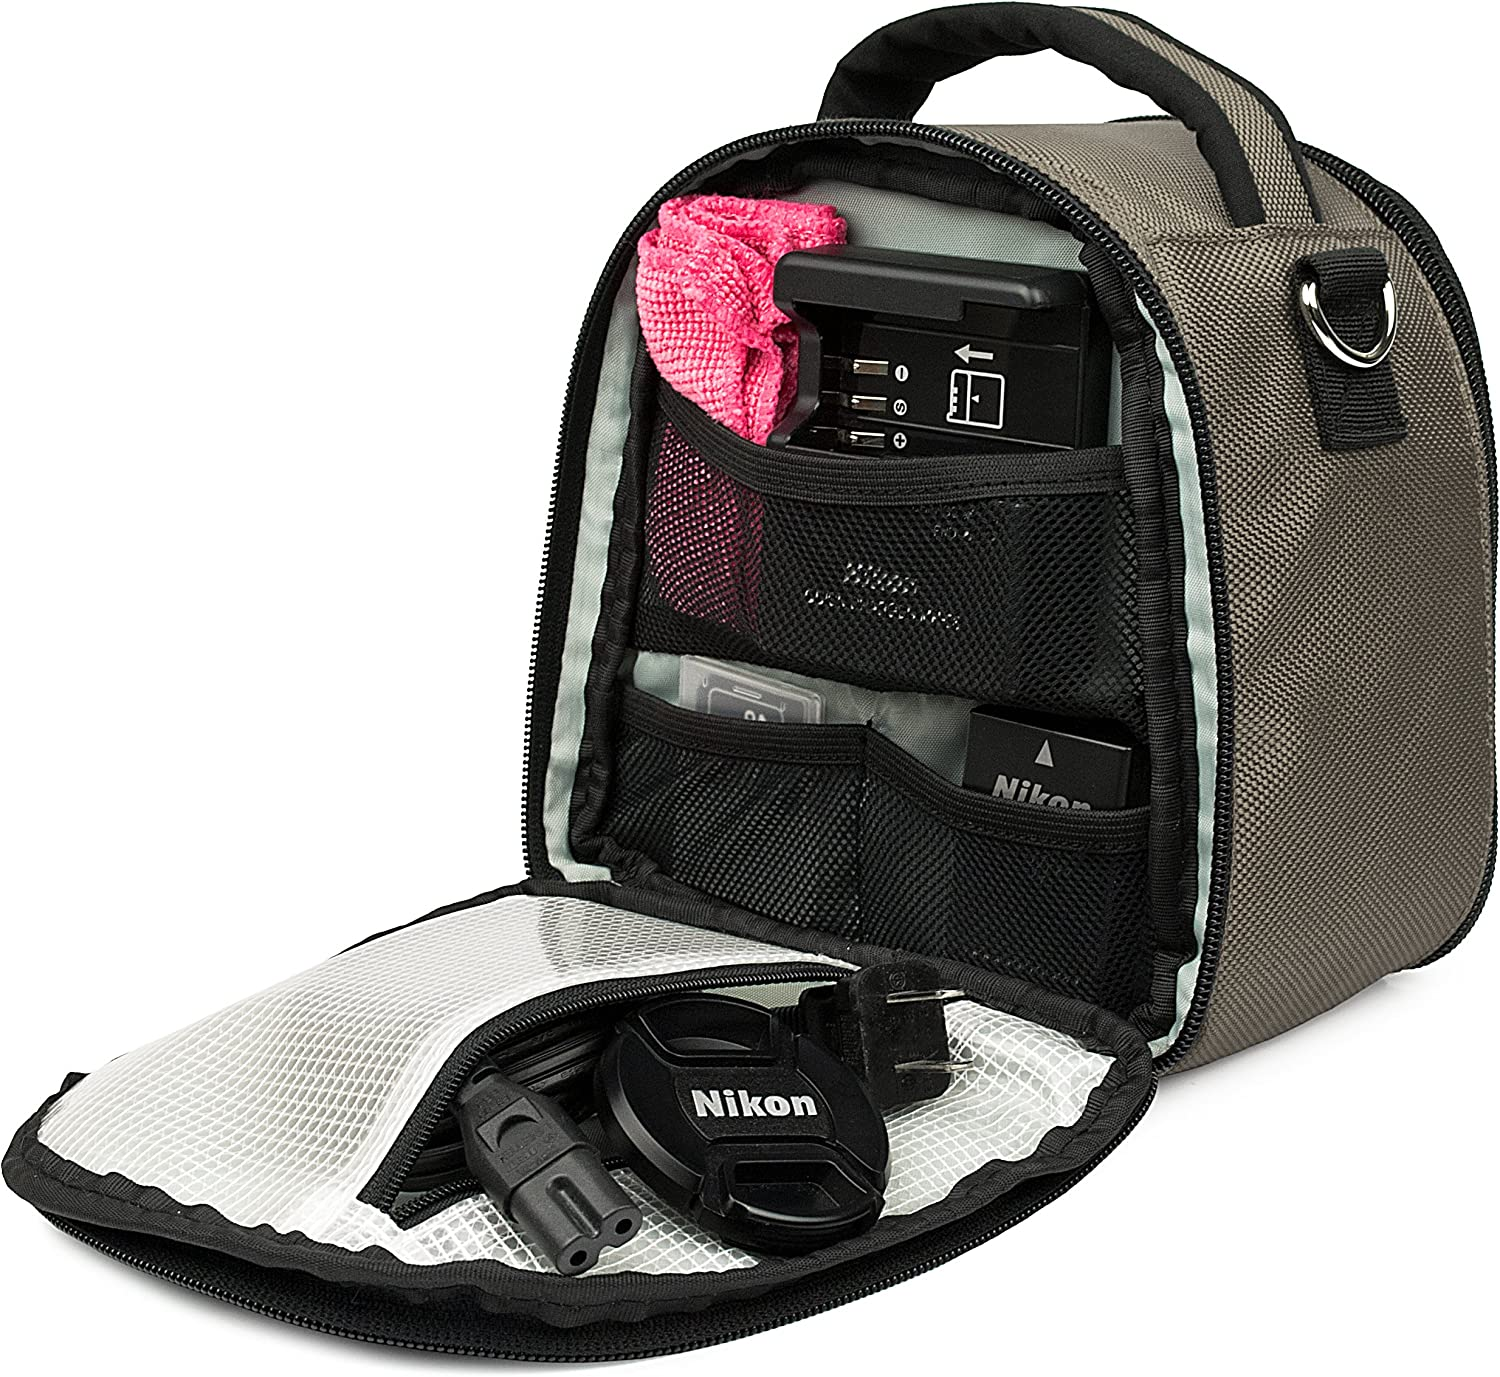 Bag with Shoulder Strap Carrying Case for Seentron Action Camera 4K Video Ultra